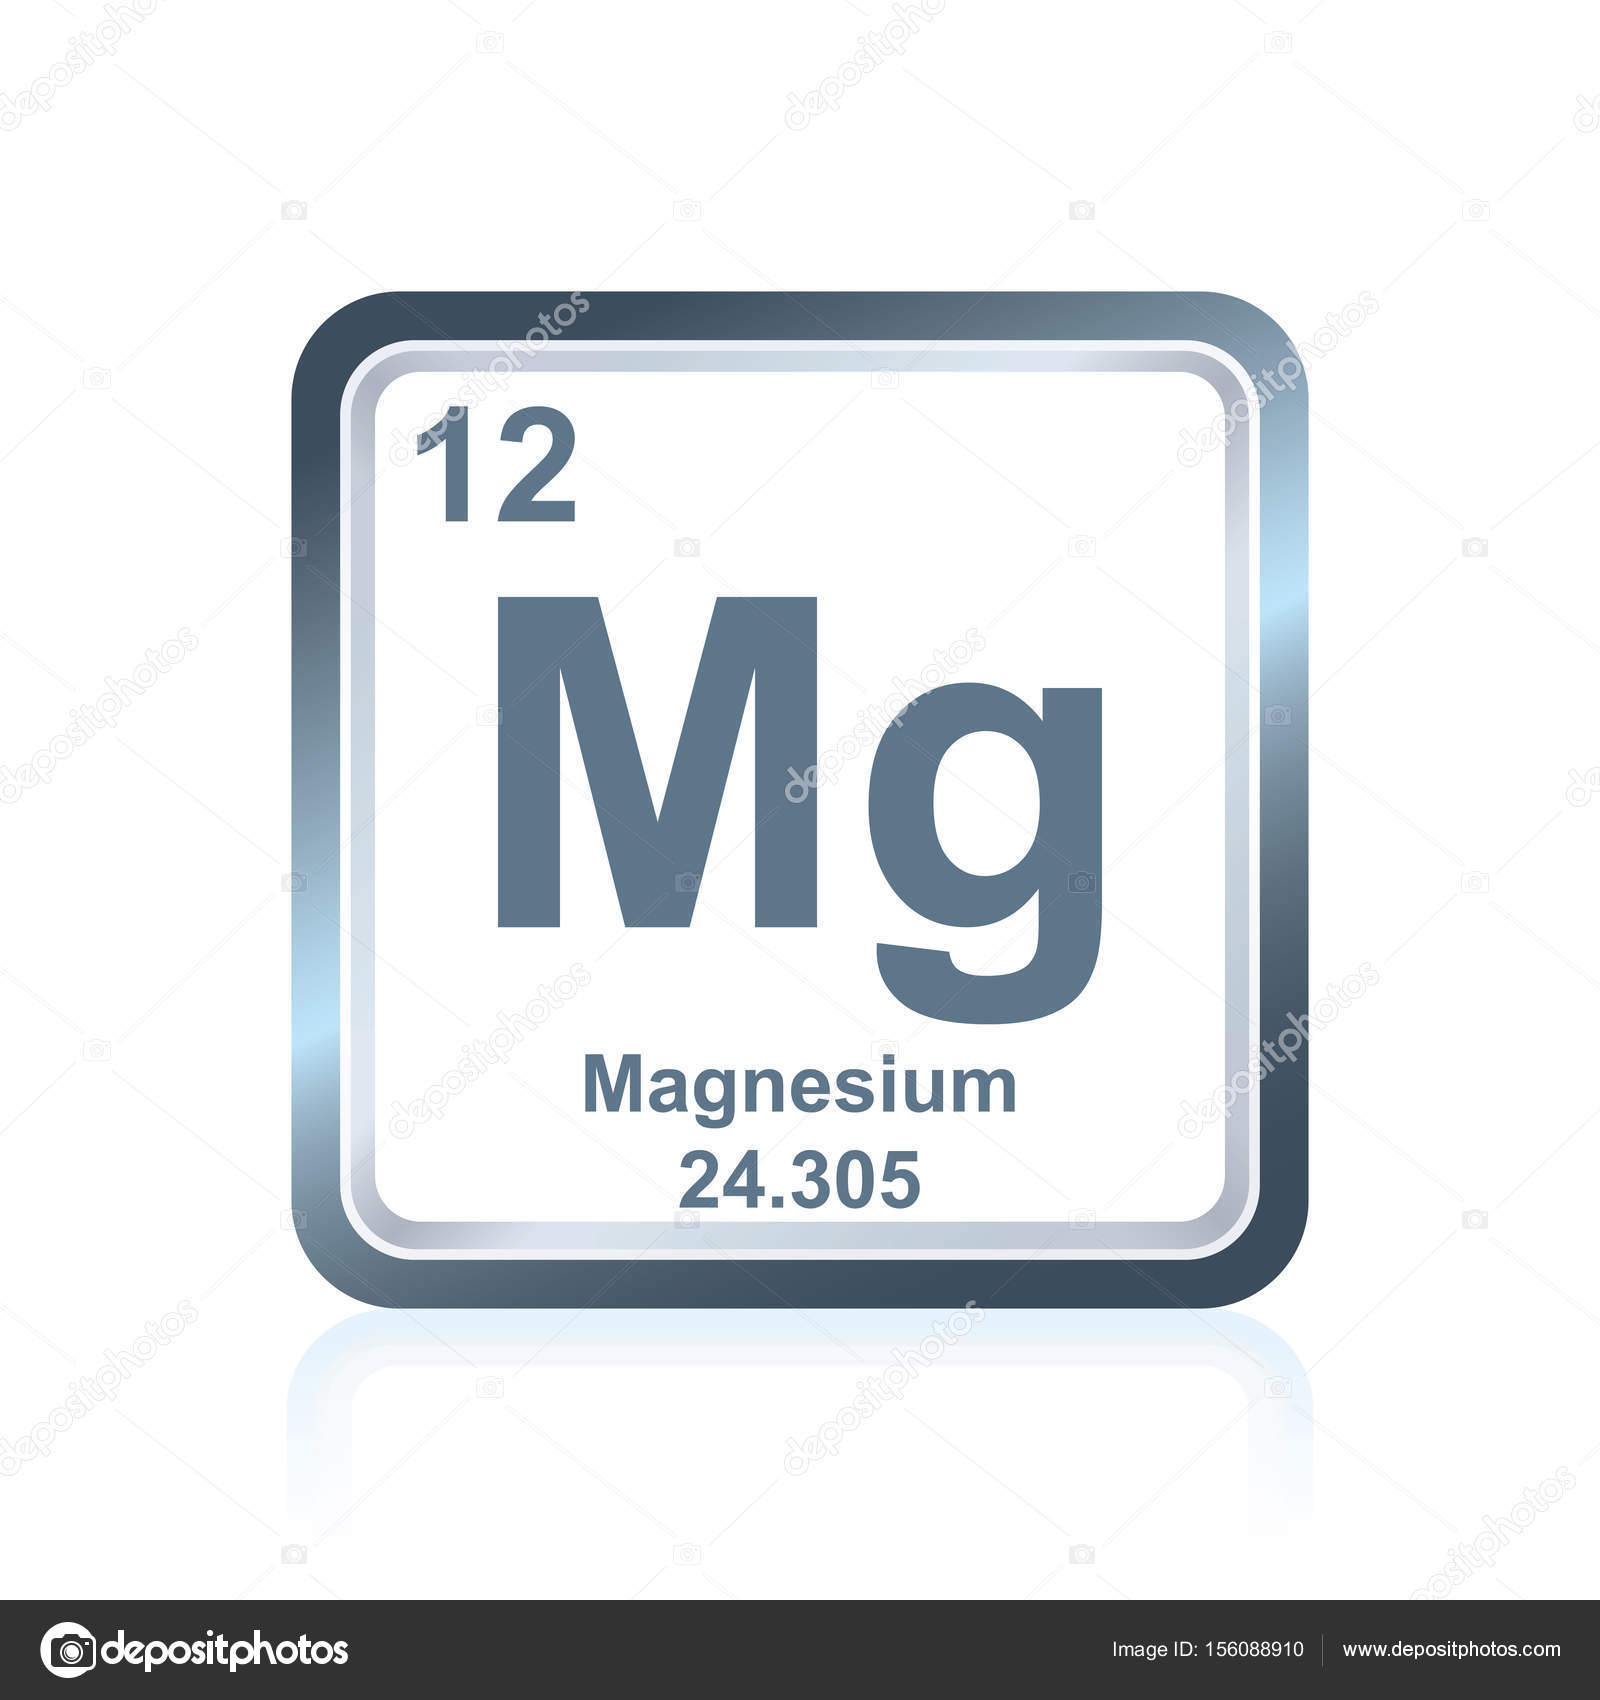 Chemical element magnesium from the periodic table stock vector symbol of chemical element magnesium as seen on the periodic table of the elements including atomic number and atomic weight vector by noedelhap urtaz Images